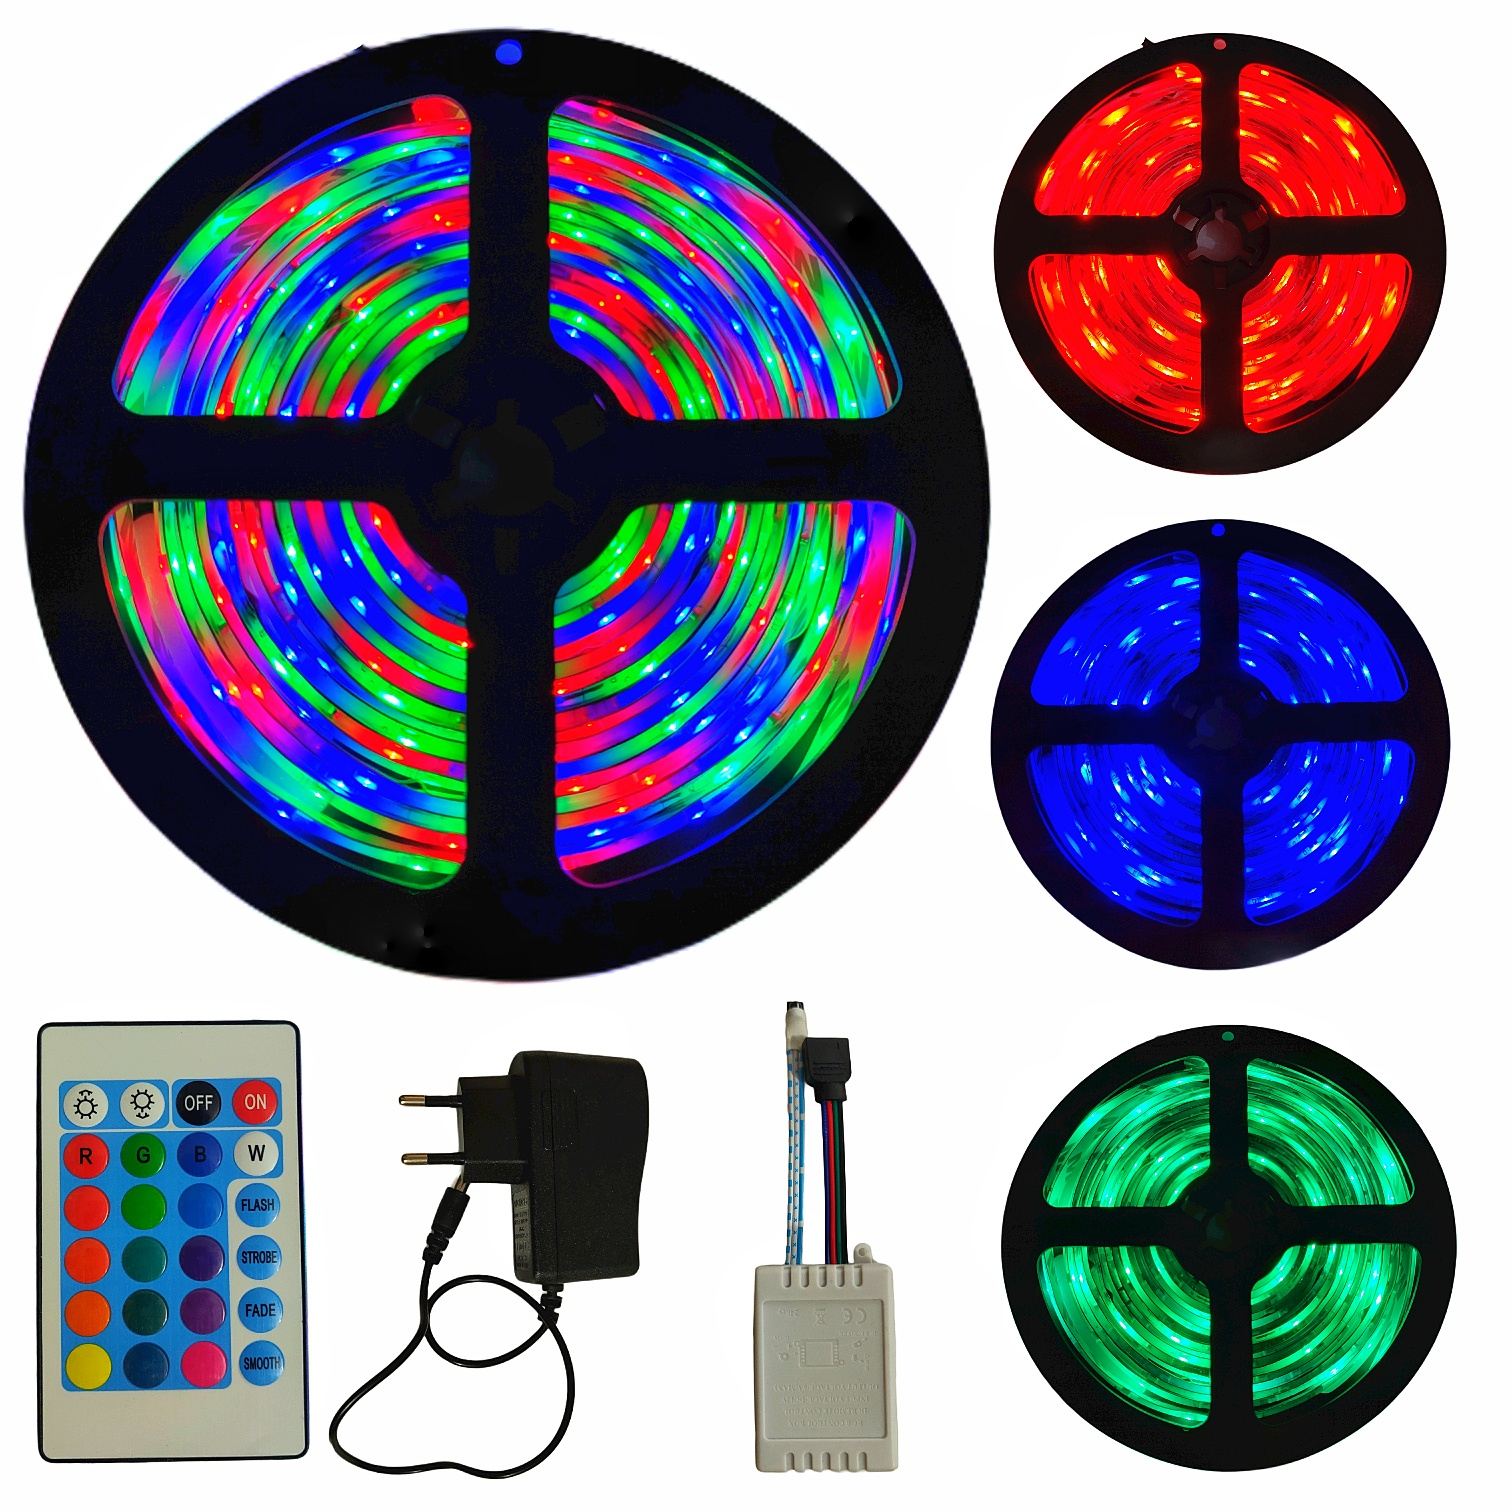 RGB LED Strip Light, Remote Control RGB LED Strip Light, 3528 LED Strip Light, Waterproof IP65 RGB SMD LED Light with Complete Kit for Home, Room, Wall, TV, Computer Table, Home Decoration, Ceiling, Bed Room, Interior, Gaming Setup | Elegant Home